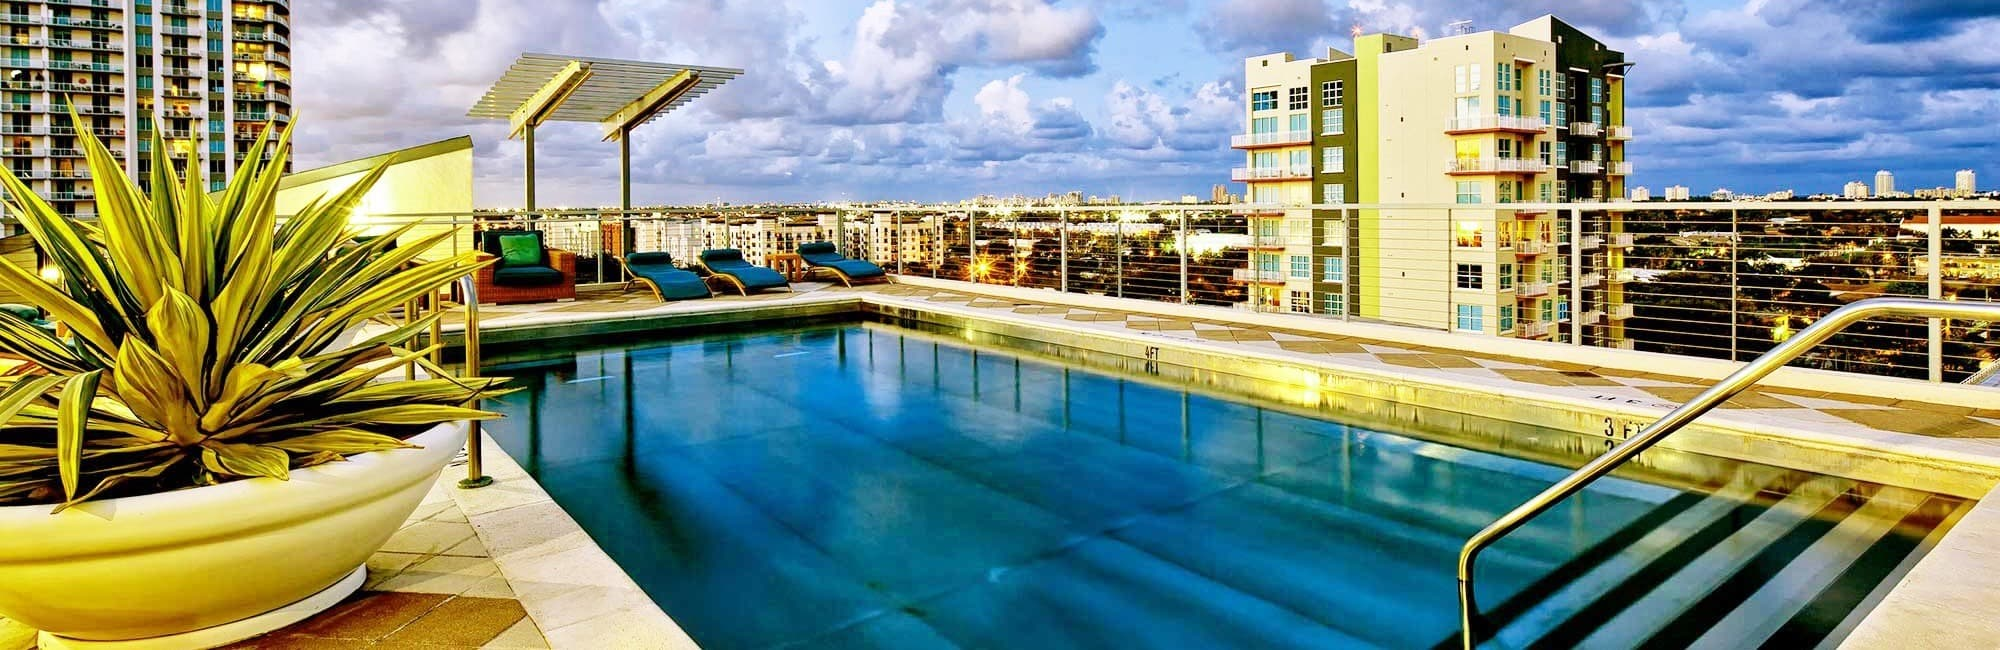 Learn more about our luxury loft community here at The Exchange Lofts in Fort Lauderdale.